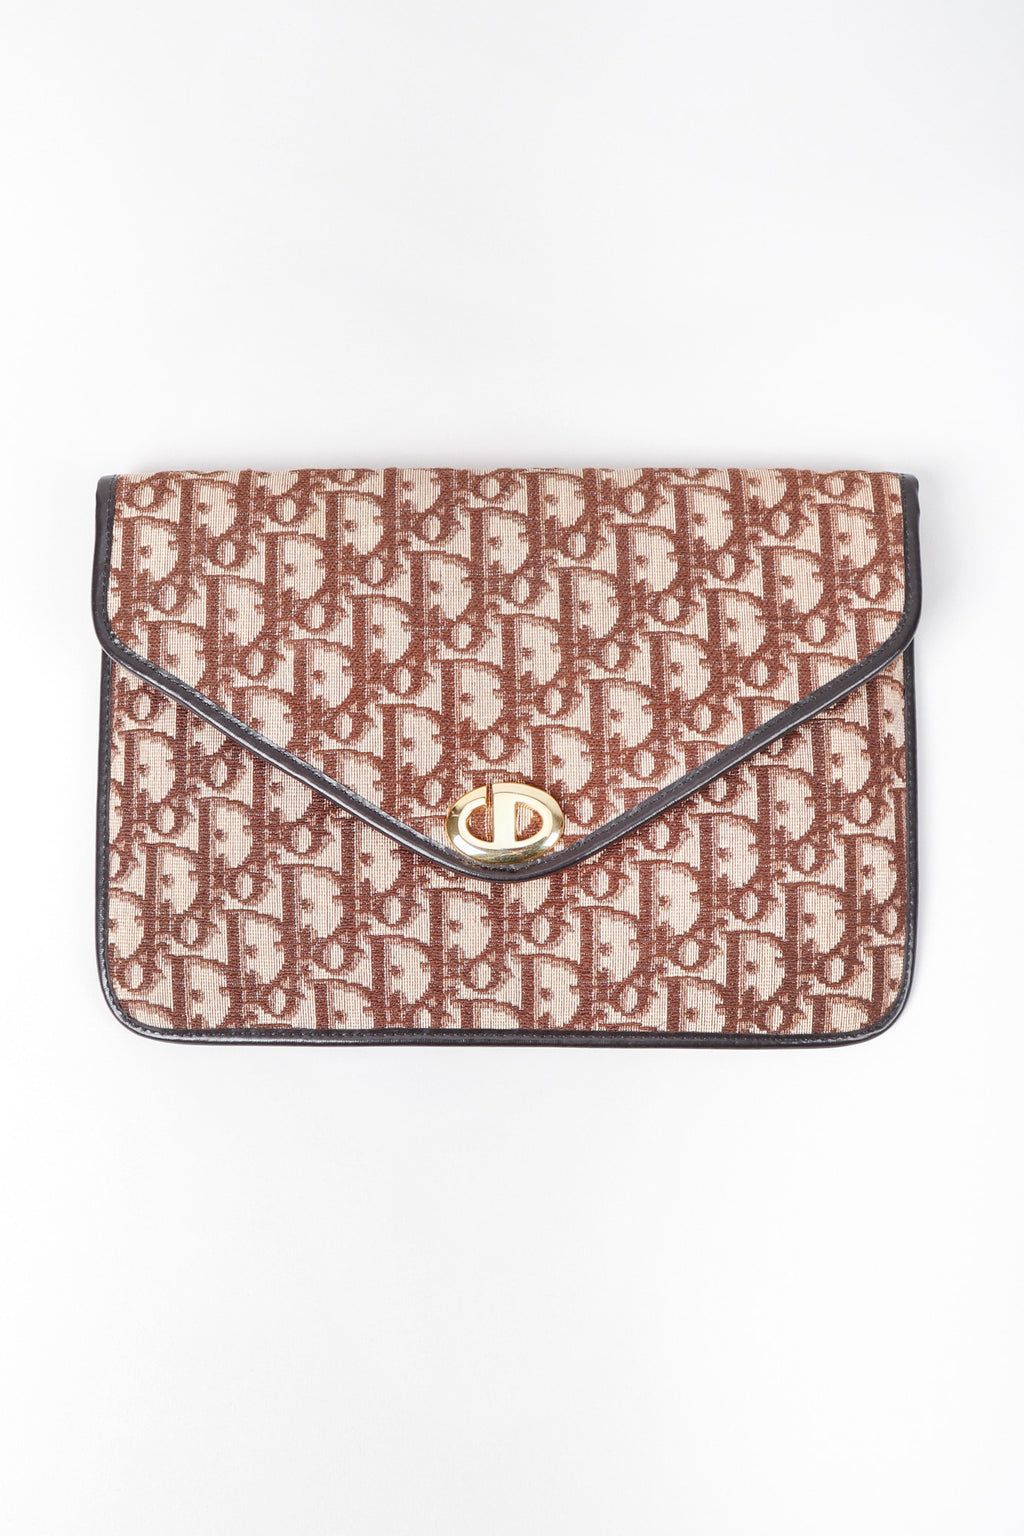 Recess Los Angeles Vintage Christian Dior Leather Monogram Envelope Clutch